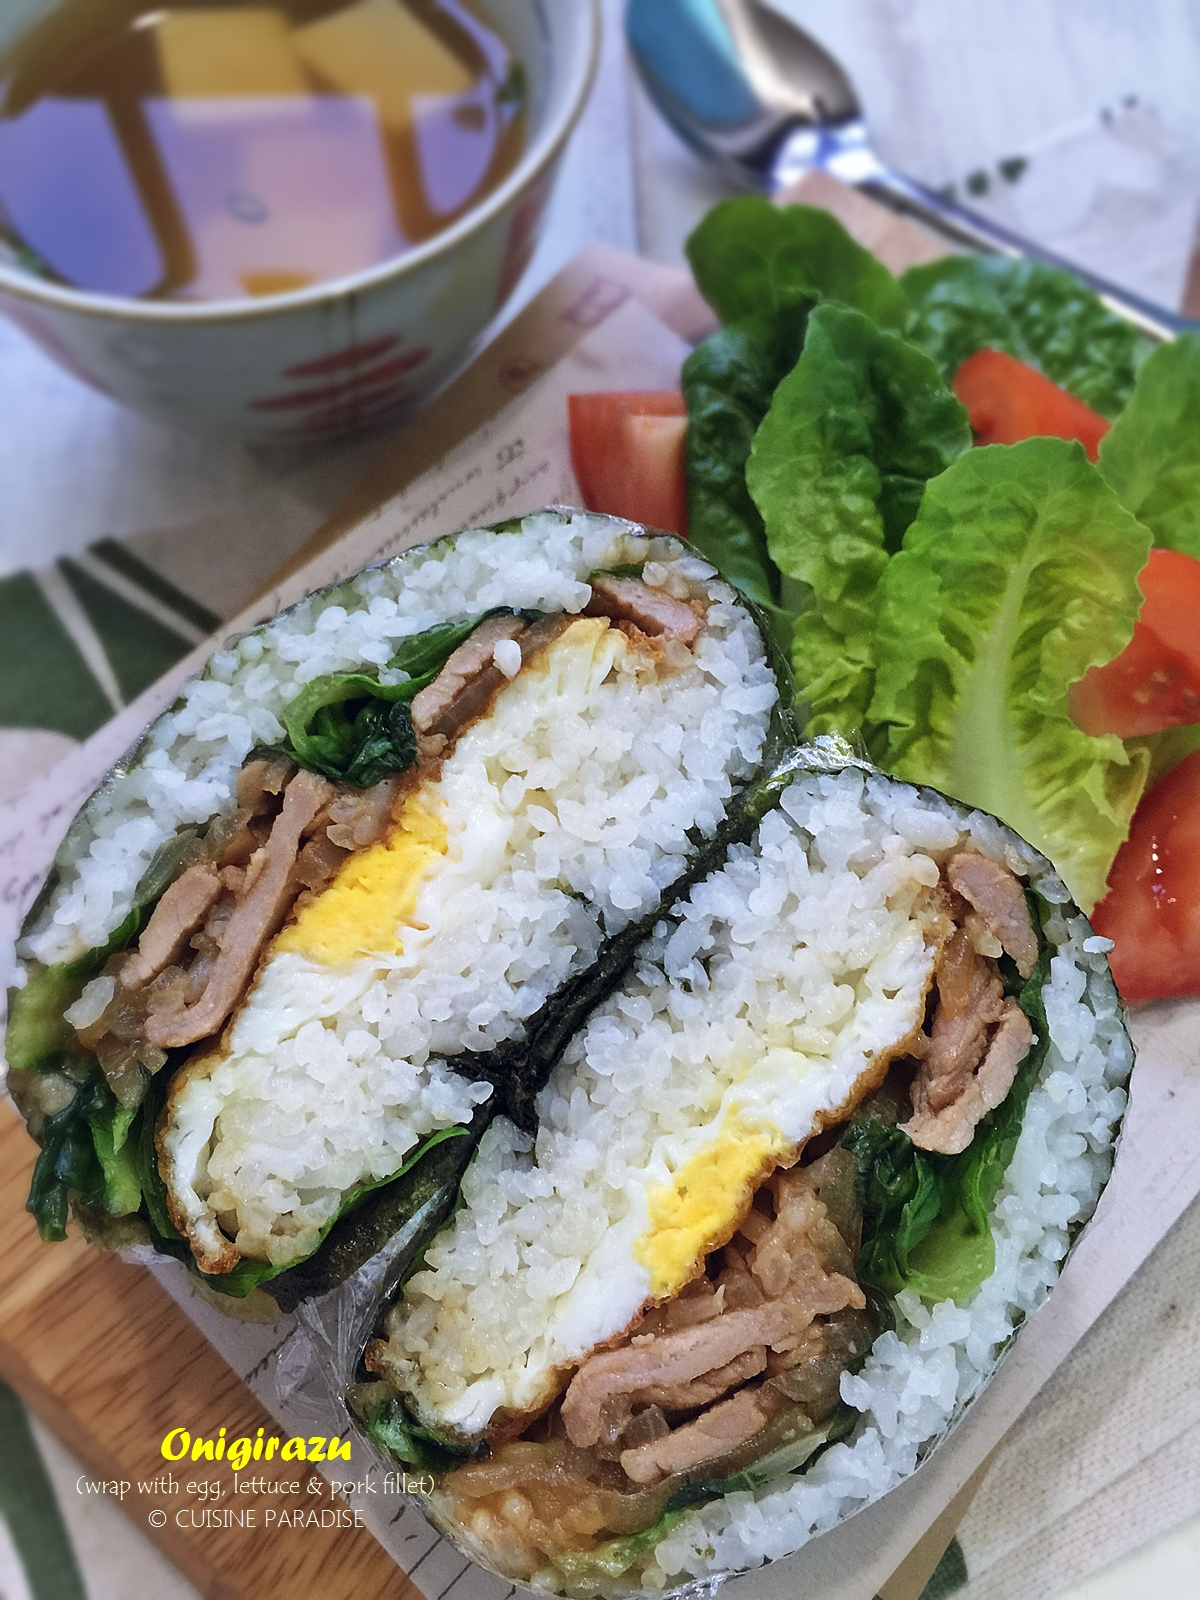 Cuisine paradise singapore food blog recipes reviews and hi everyone today i am sharing a long overdue post on making onigirazu which i have posted months back over at instagram and dayre forumfinder Images